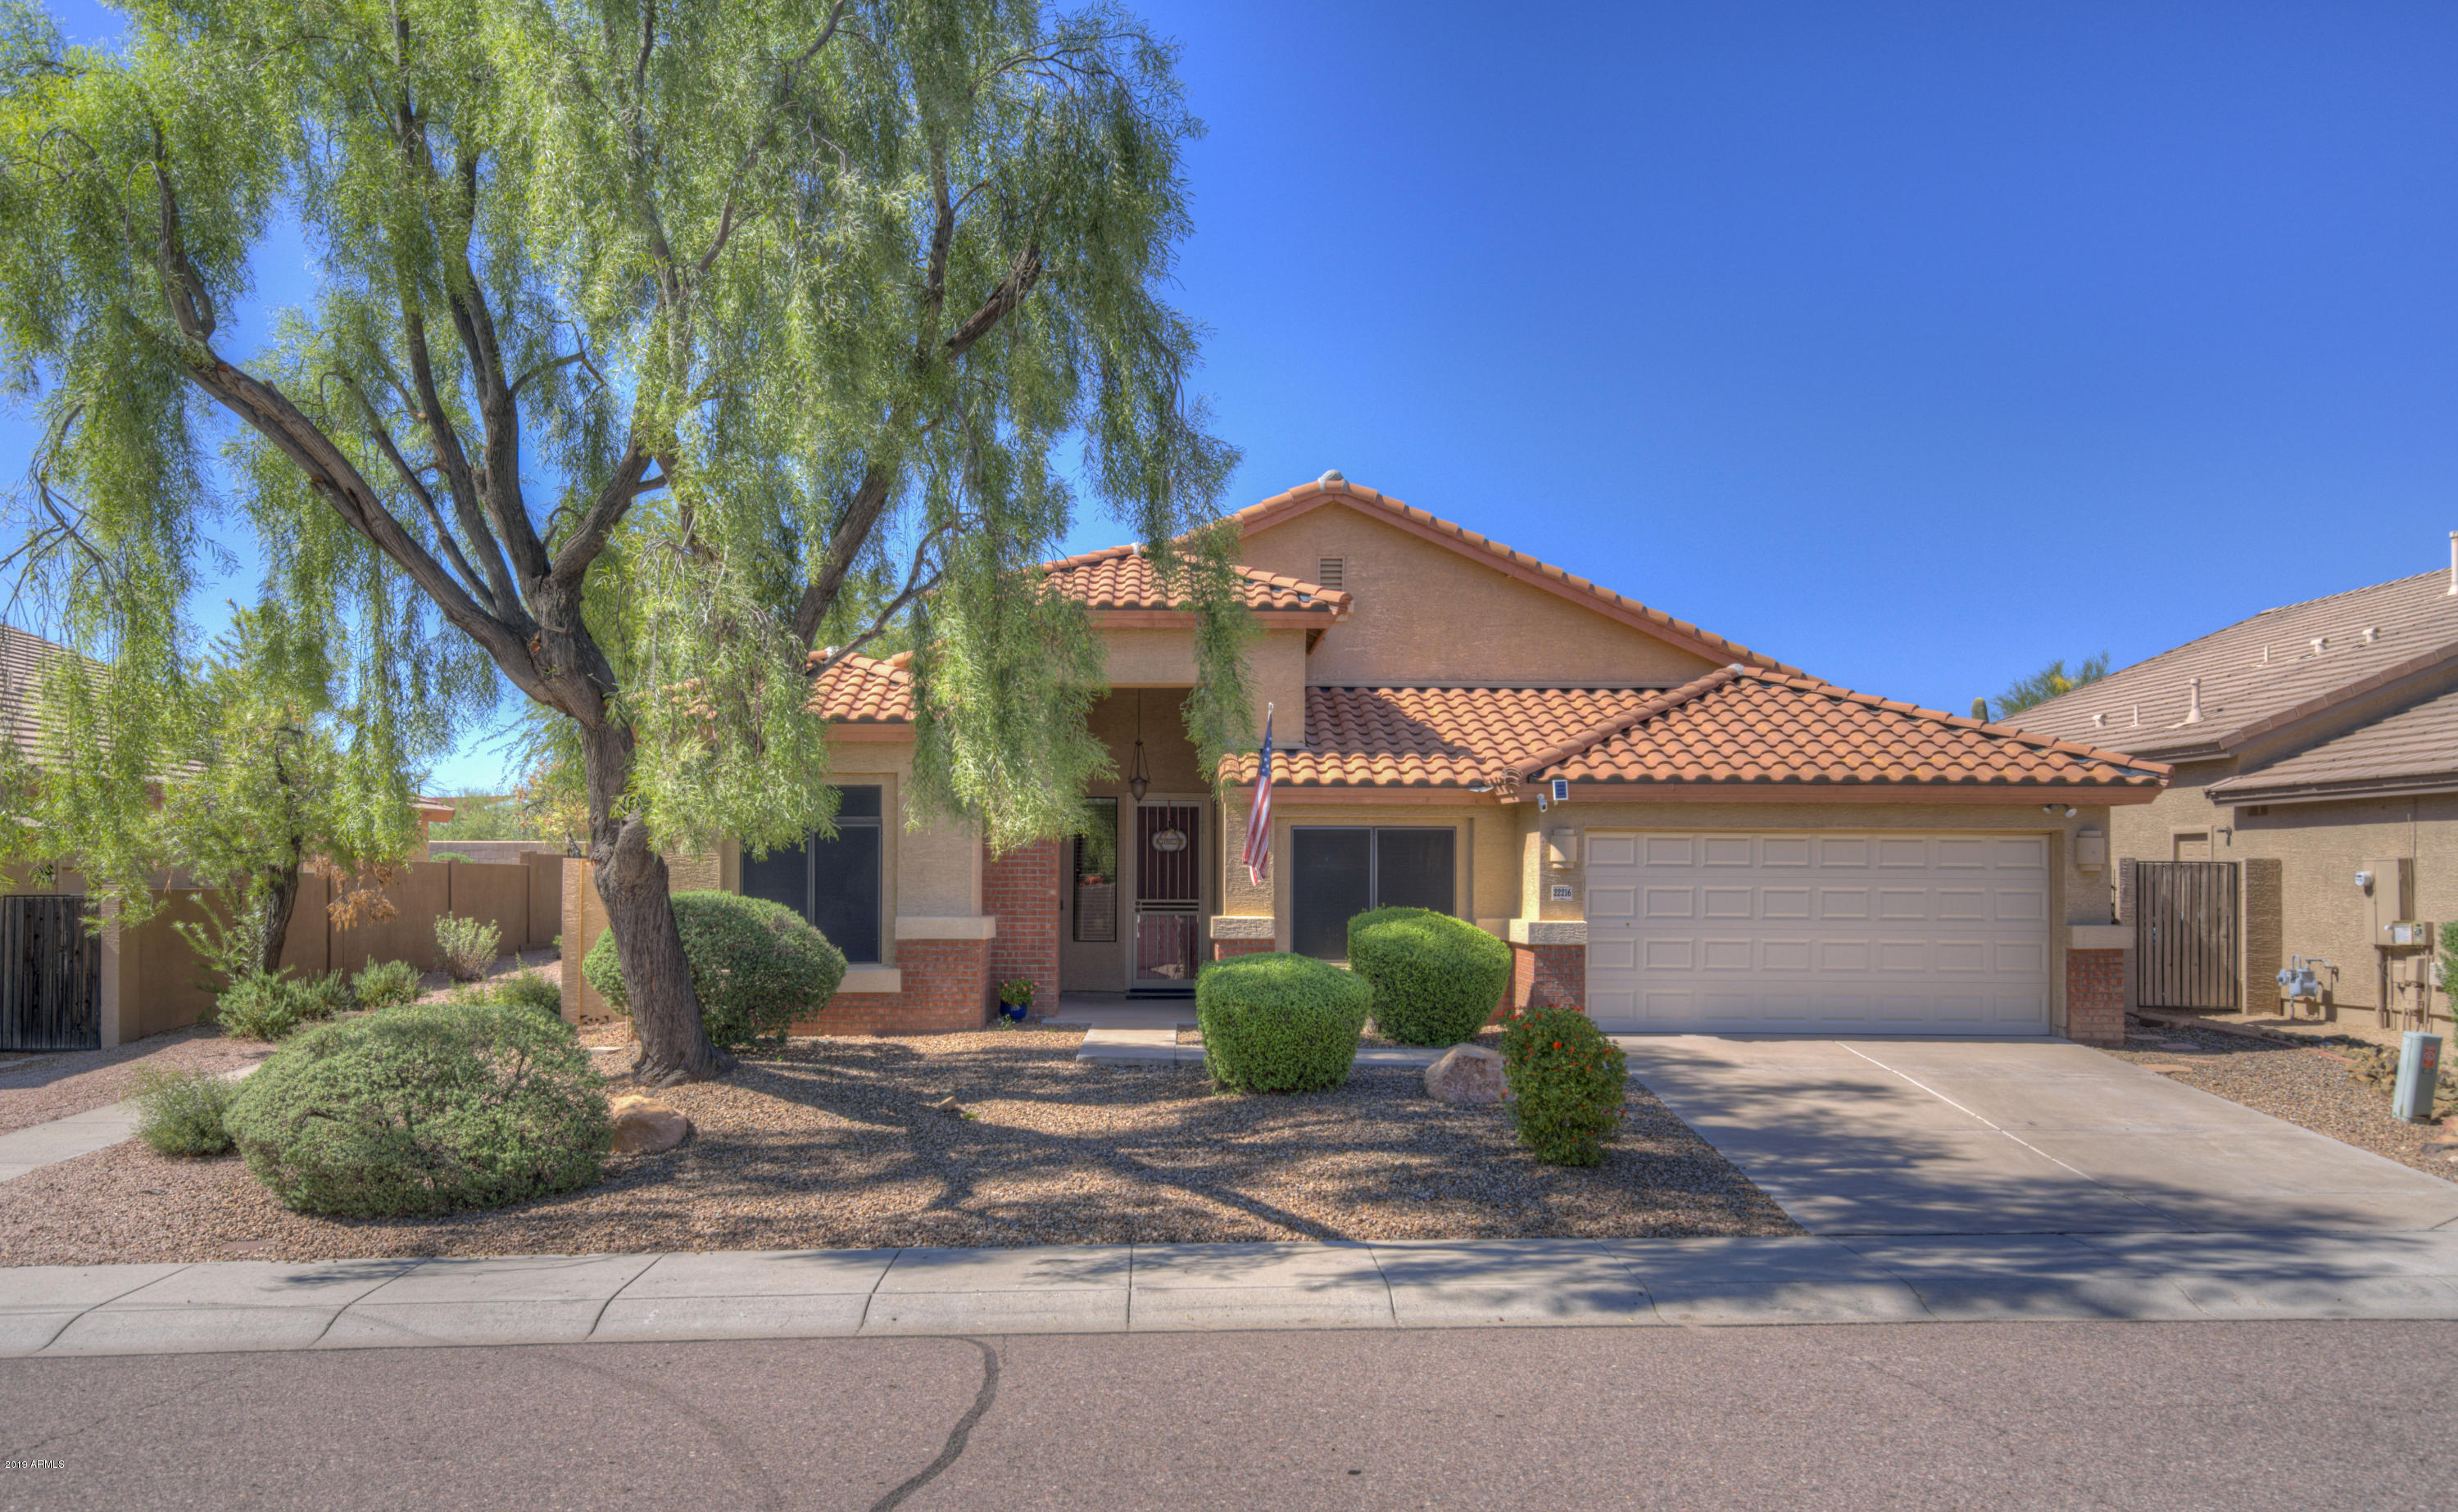 Photo of 22216 N 44TH Place N, Phoenix, AZ 85050